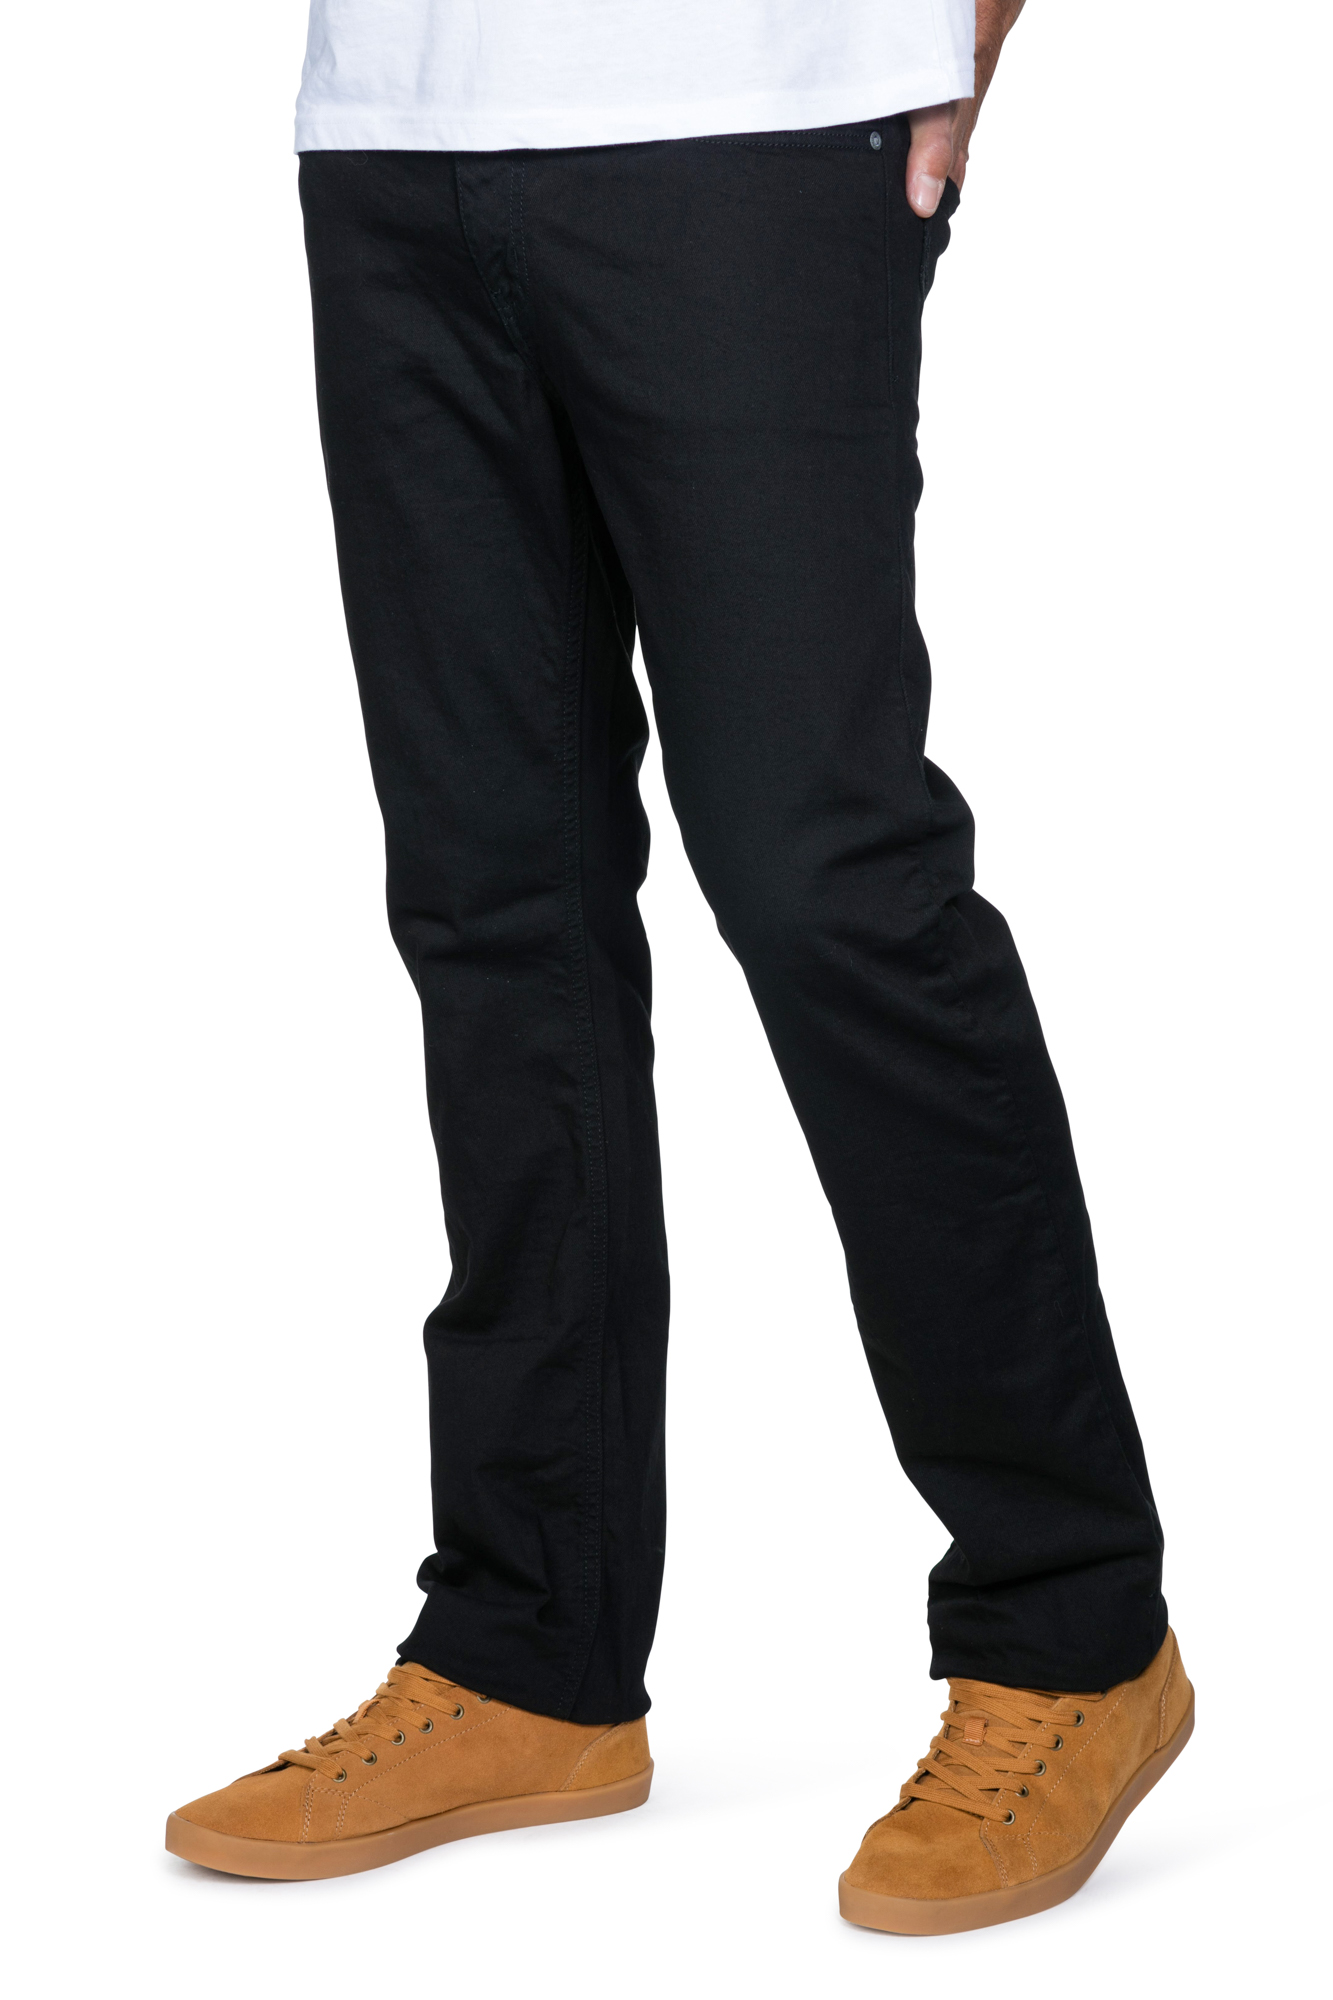 jeans_homme_redman_mathieu_denim_black_black_2.jpg